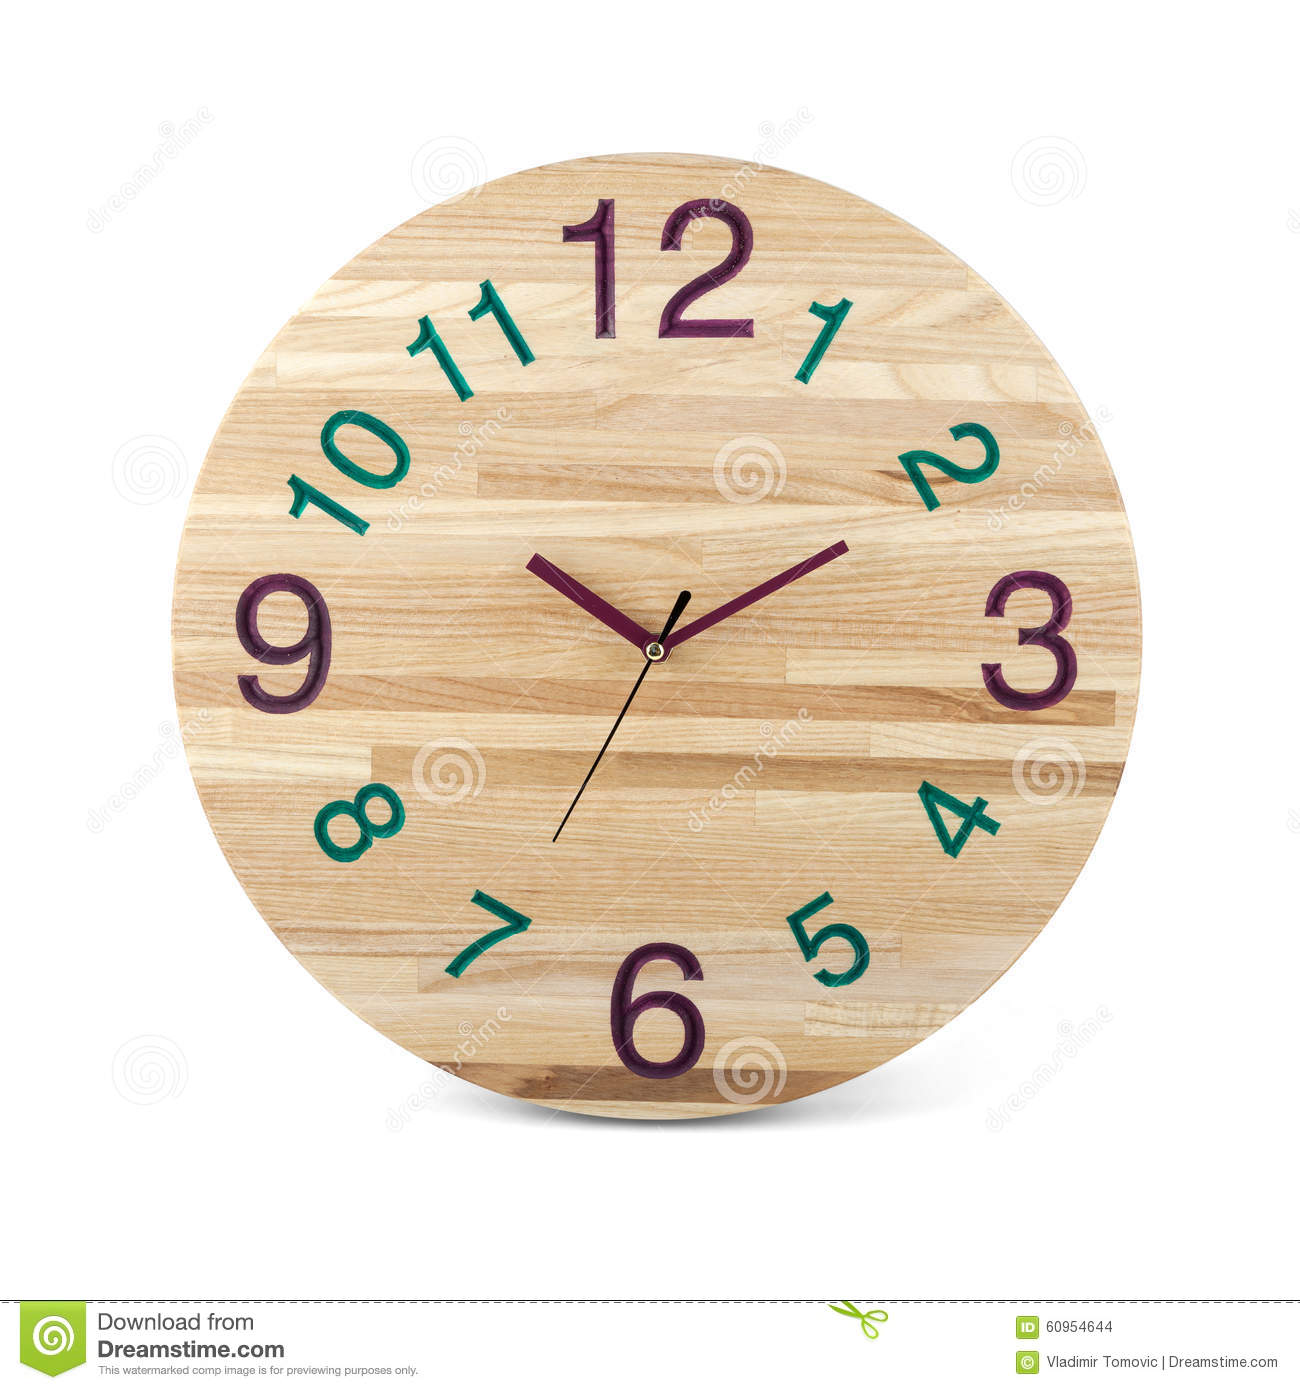 Wooden round wall watch clock isolated on white background stock wooden round wall watch clock isolated on white background amipublicfo Choice Image